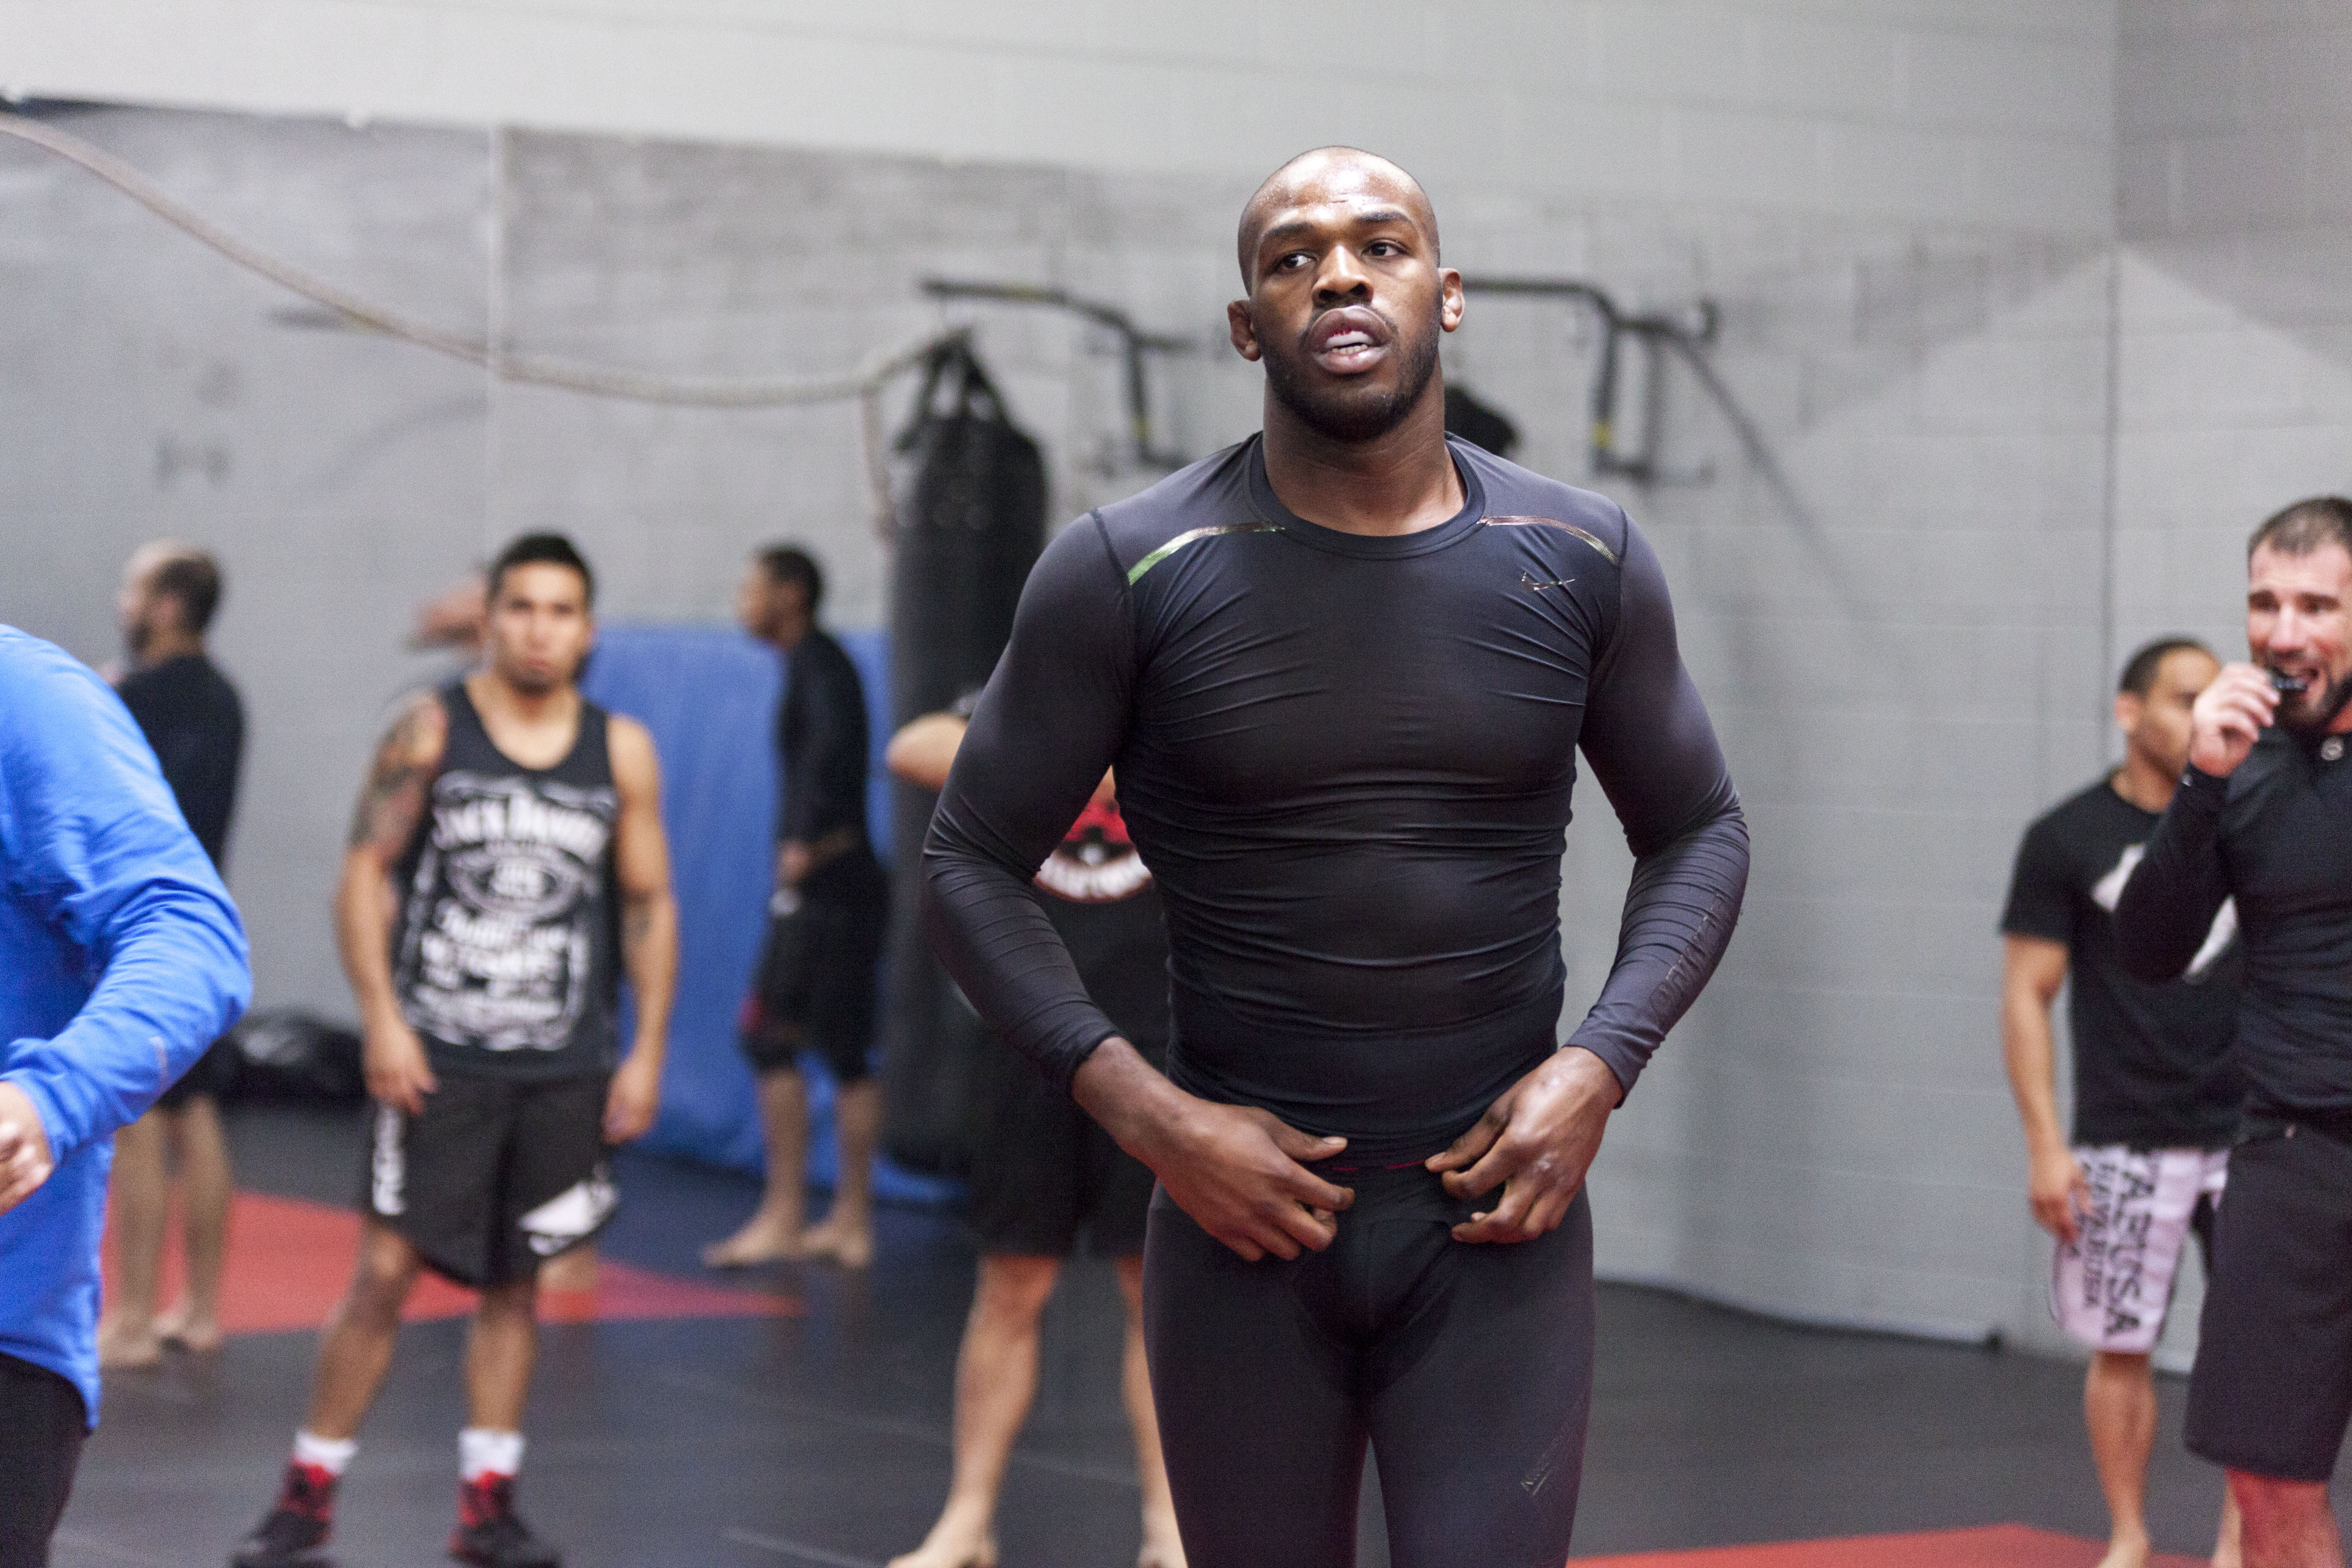 Jon Jones at a training session in 2014. (Getty)